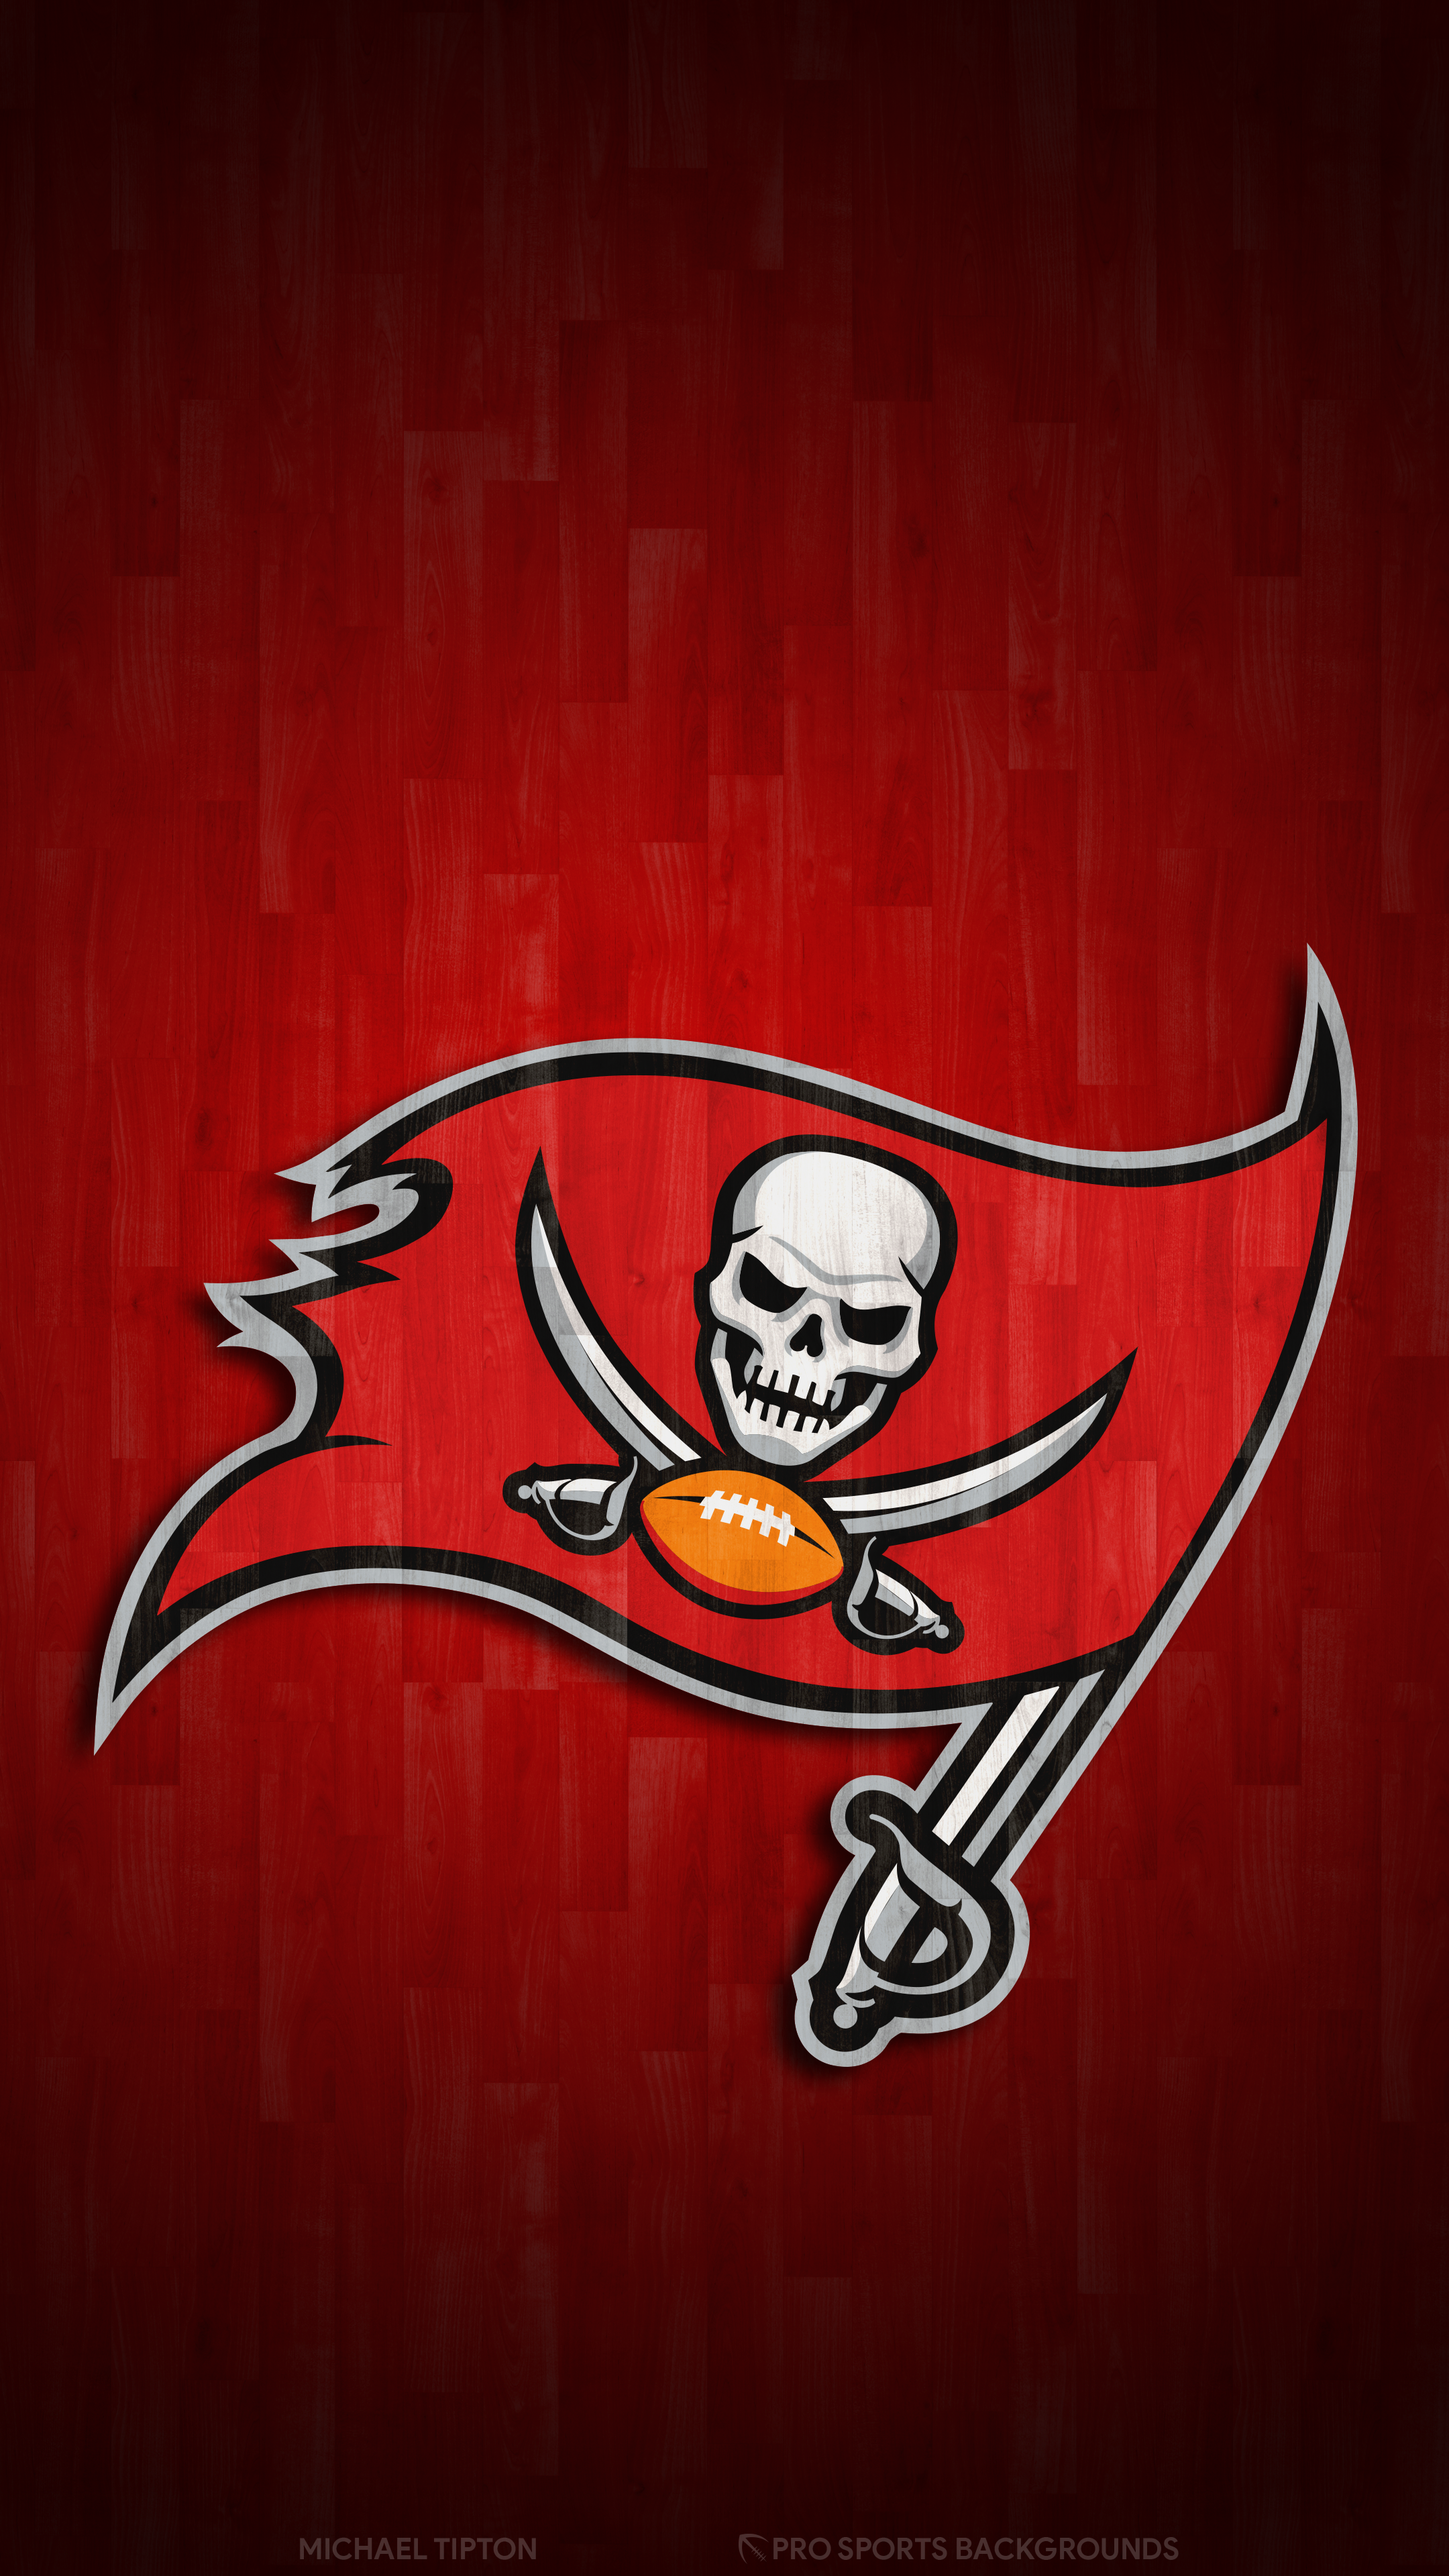 Tampa Bay Buccaneers 2019 Wallpapers.